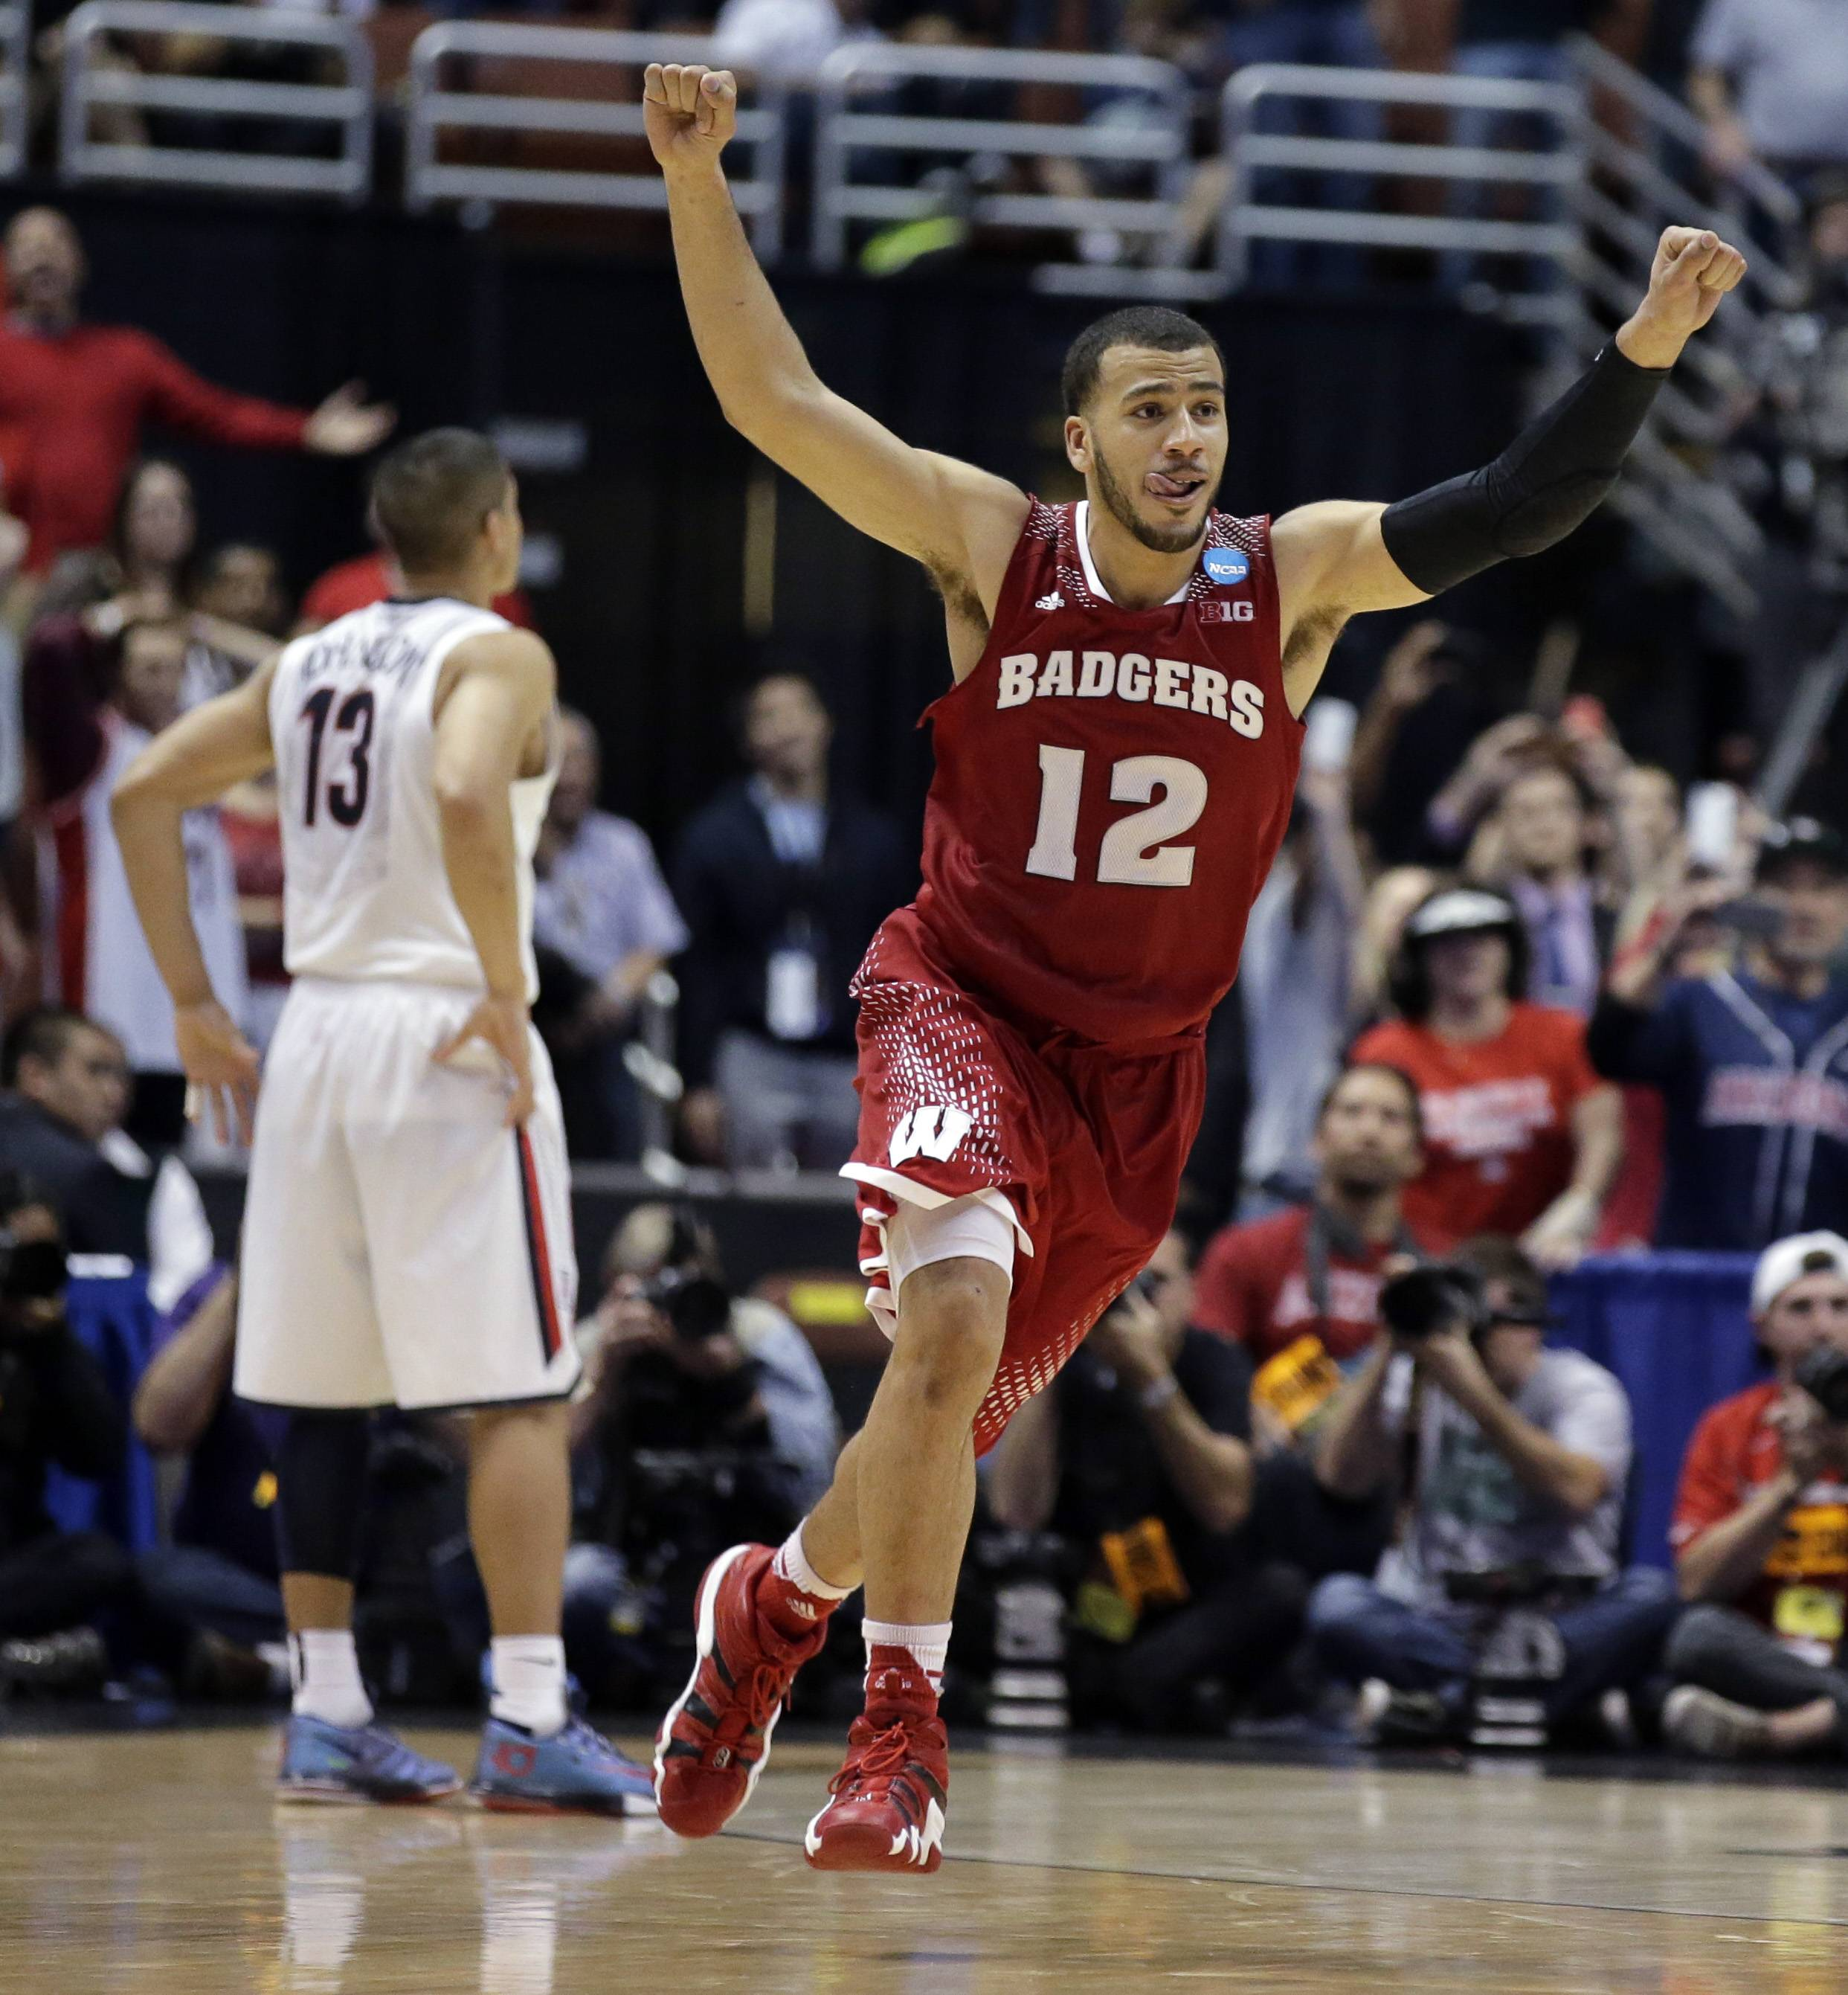 Wisconsin 's Traevon Jackson celebrates in front of Arizona's Nick Johnson (13) as time runs out in overtime of a regional final NCAA college basketball tournament game, Saturday in Anaheim, Calif. Wisconsin is now prepping for its Final Four game.